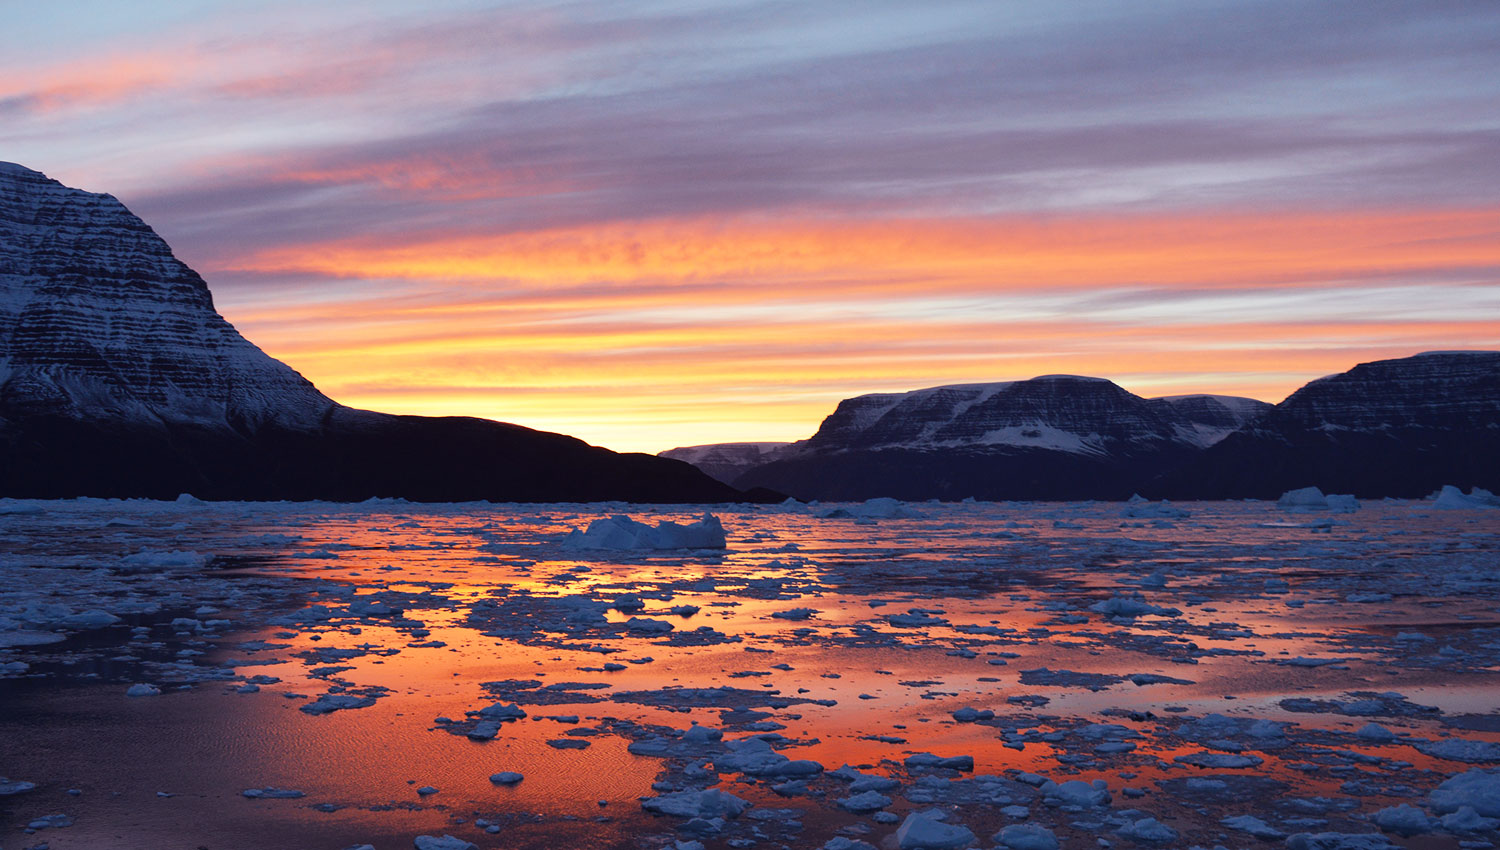 Greenland sunset, kayaking adventure